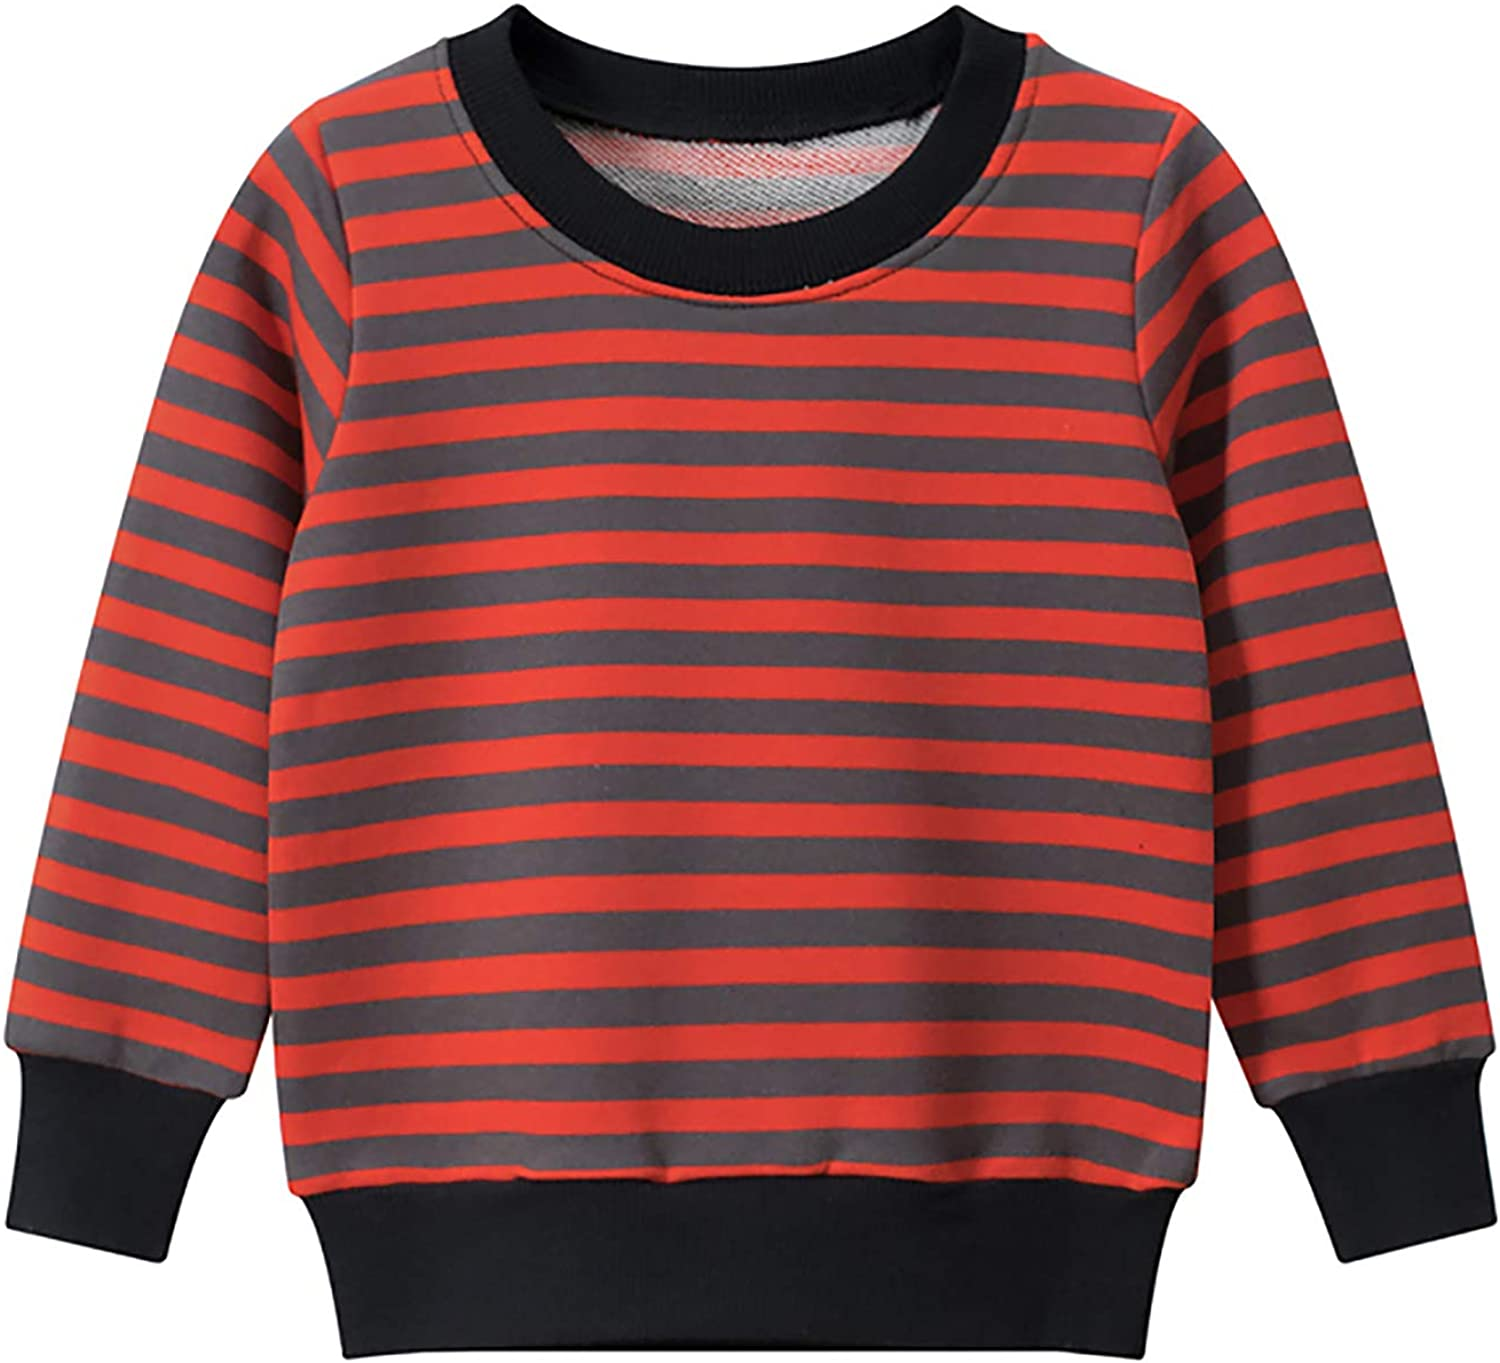 Kids Toddler Girls Boys Striped Sweatshirt Casual Long Sleeve Pullover Tops Tee Shirts Blouse Red 5-6 Years Old